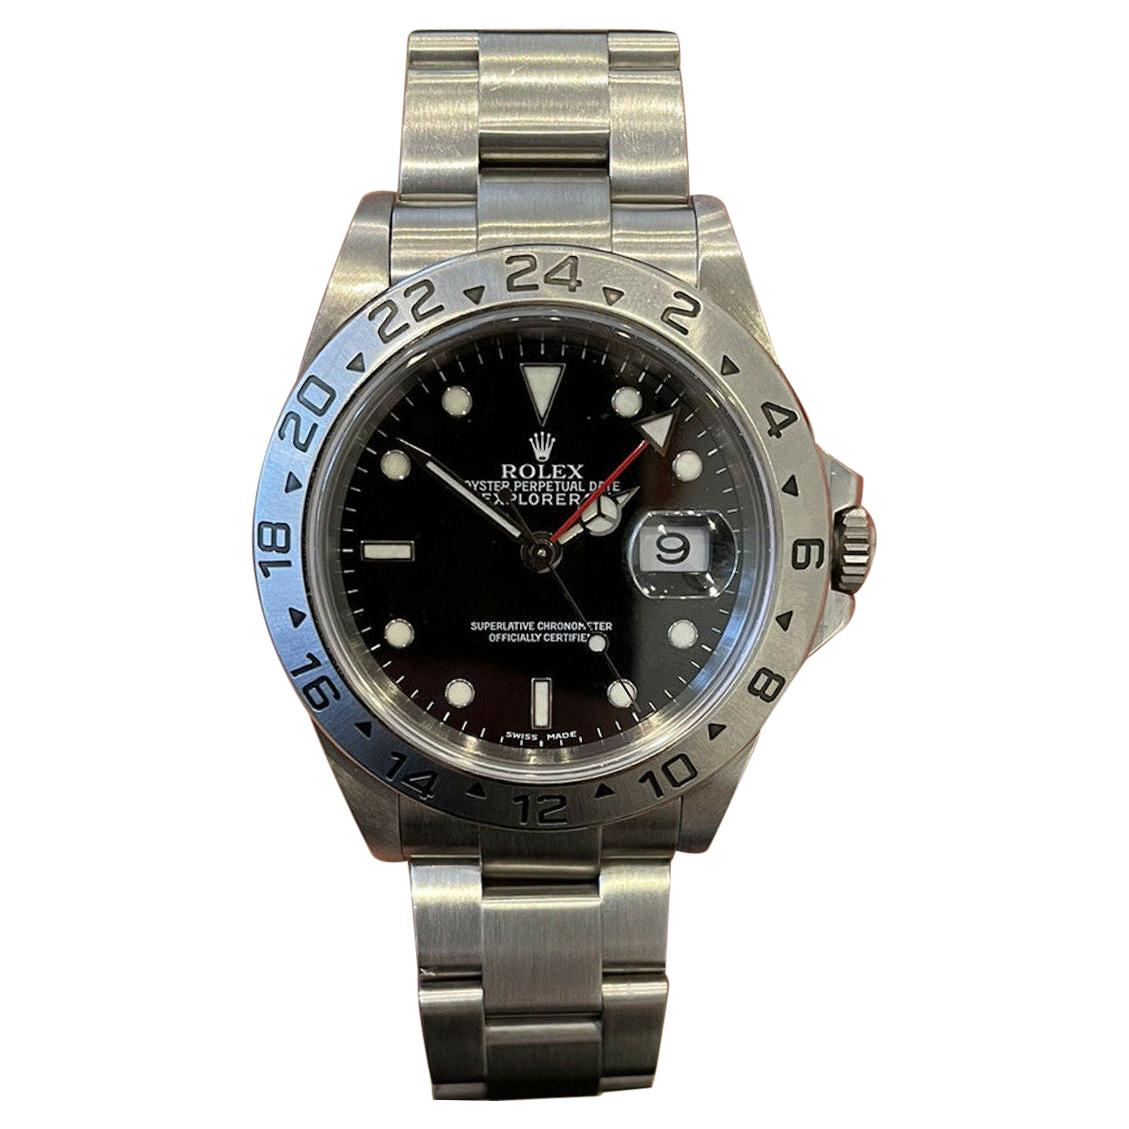 Rolex Explorer II 16570 GMT Stainless Steel Black Dial Watch W/ Papers